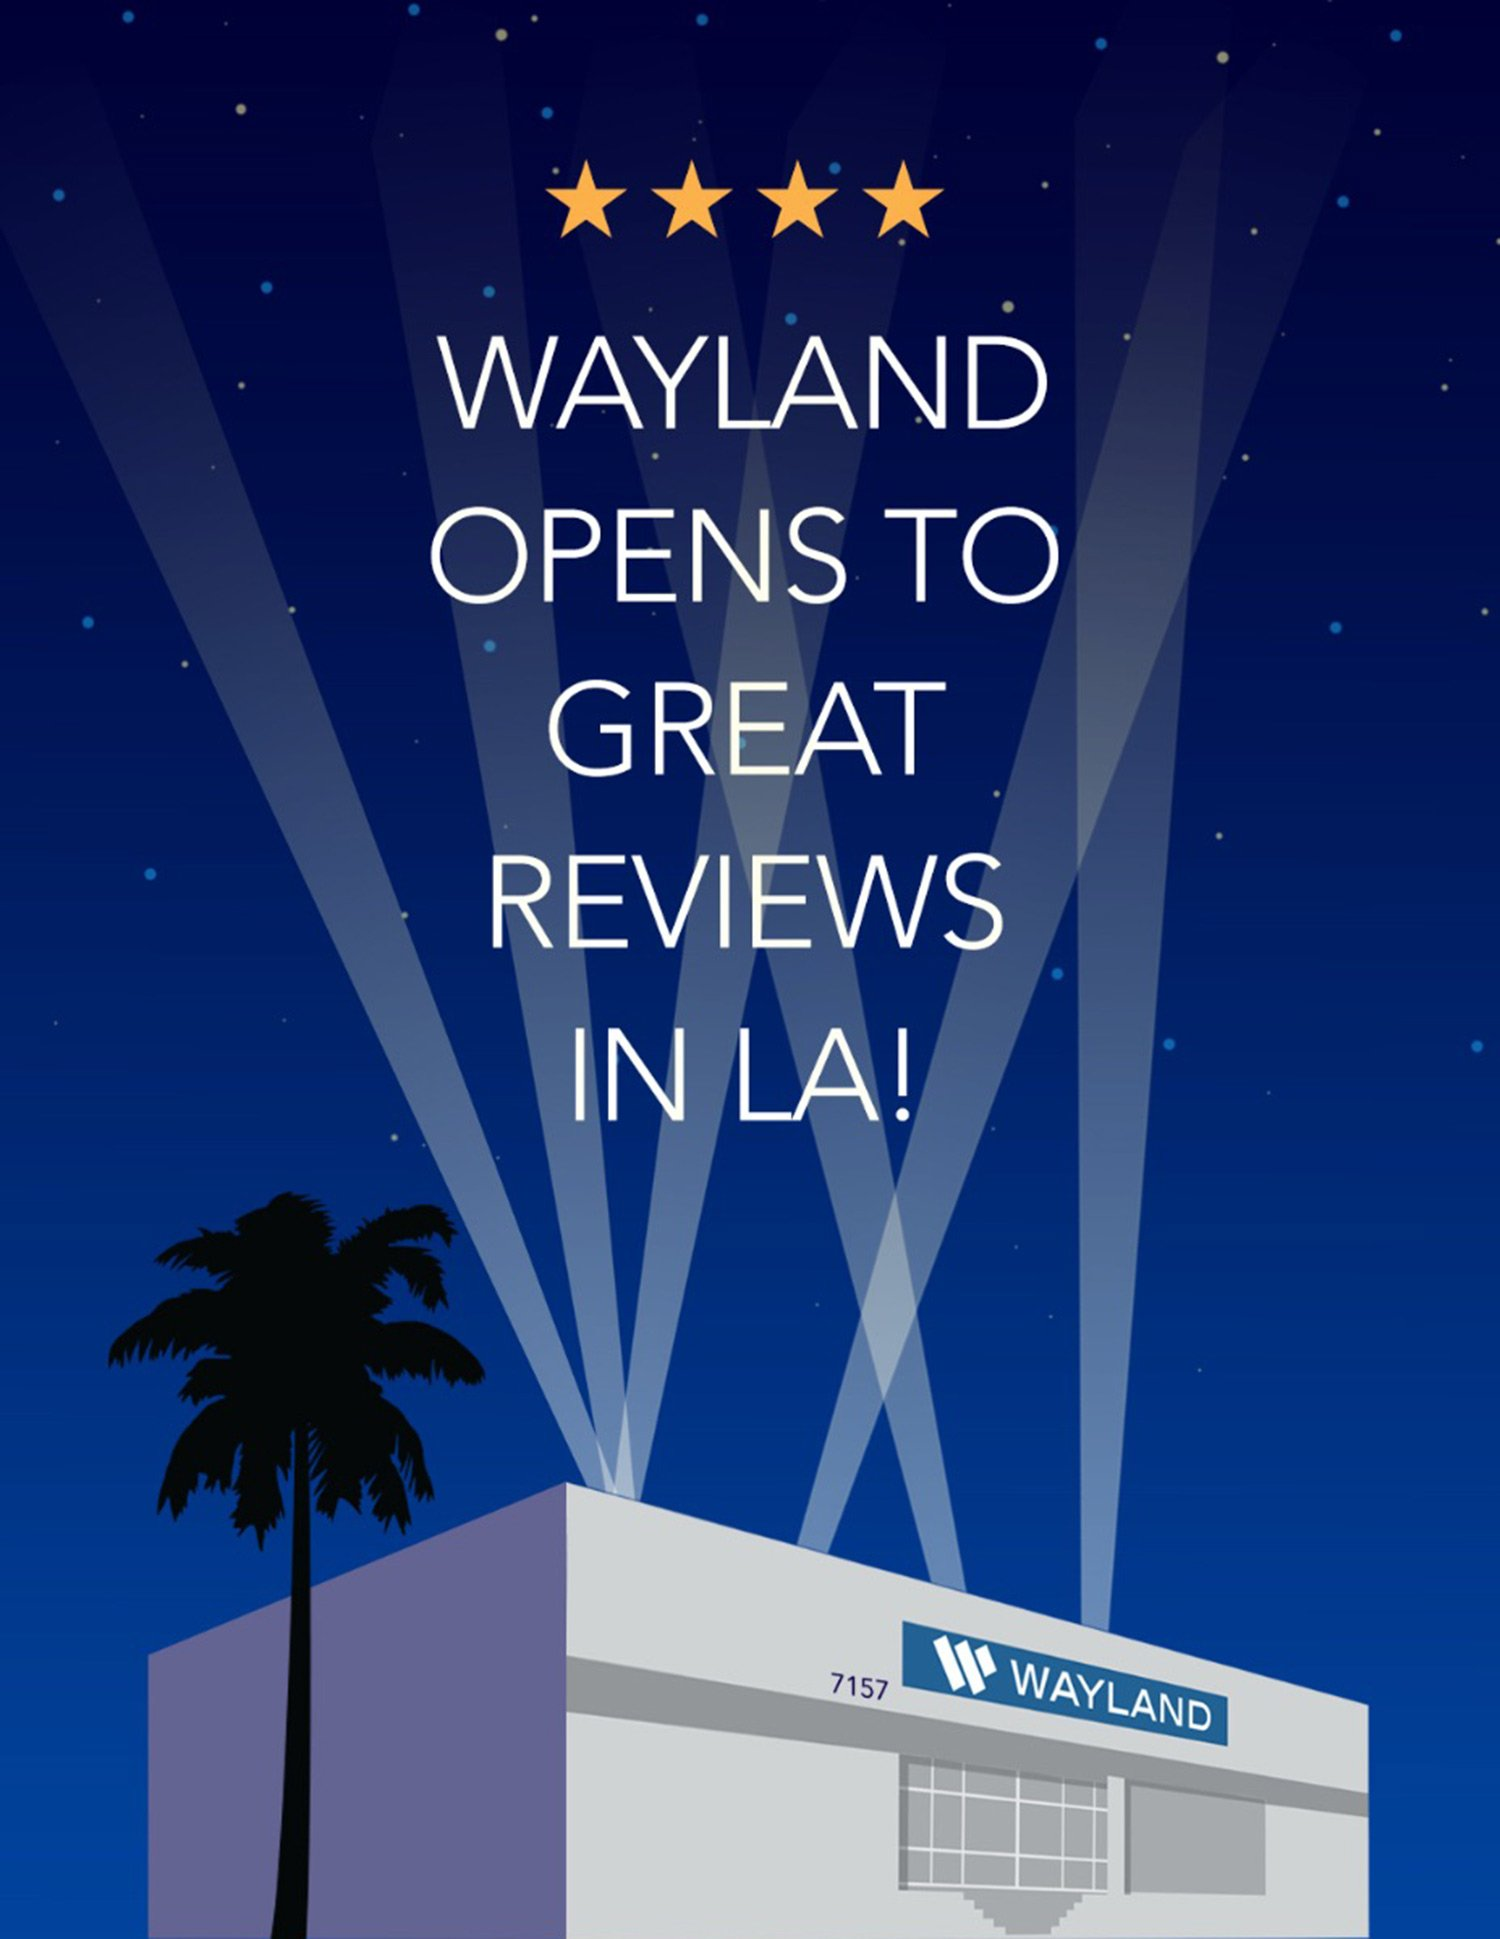 Wayland opens to great reviews in LA!